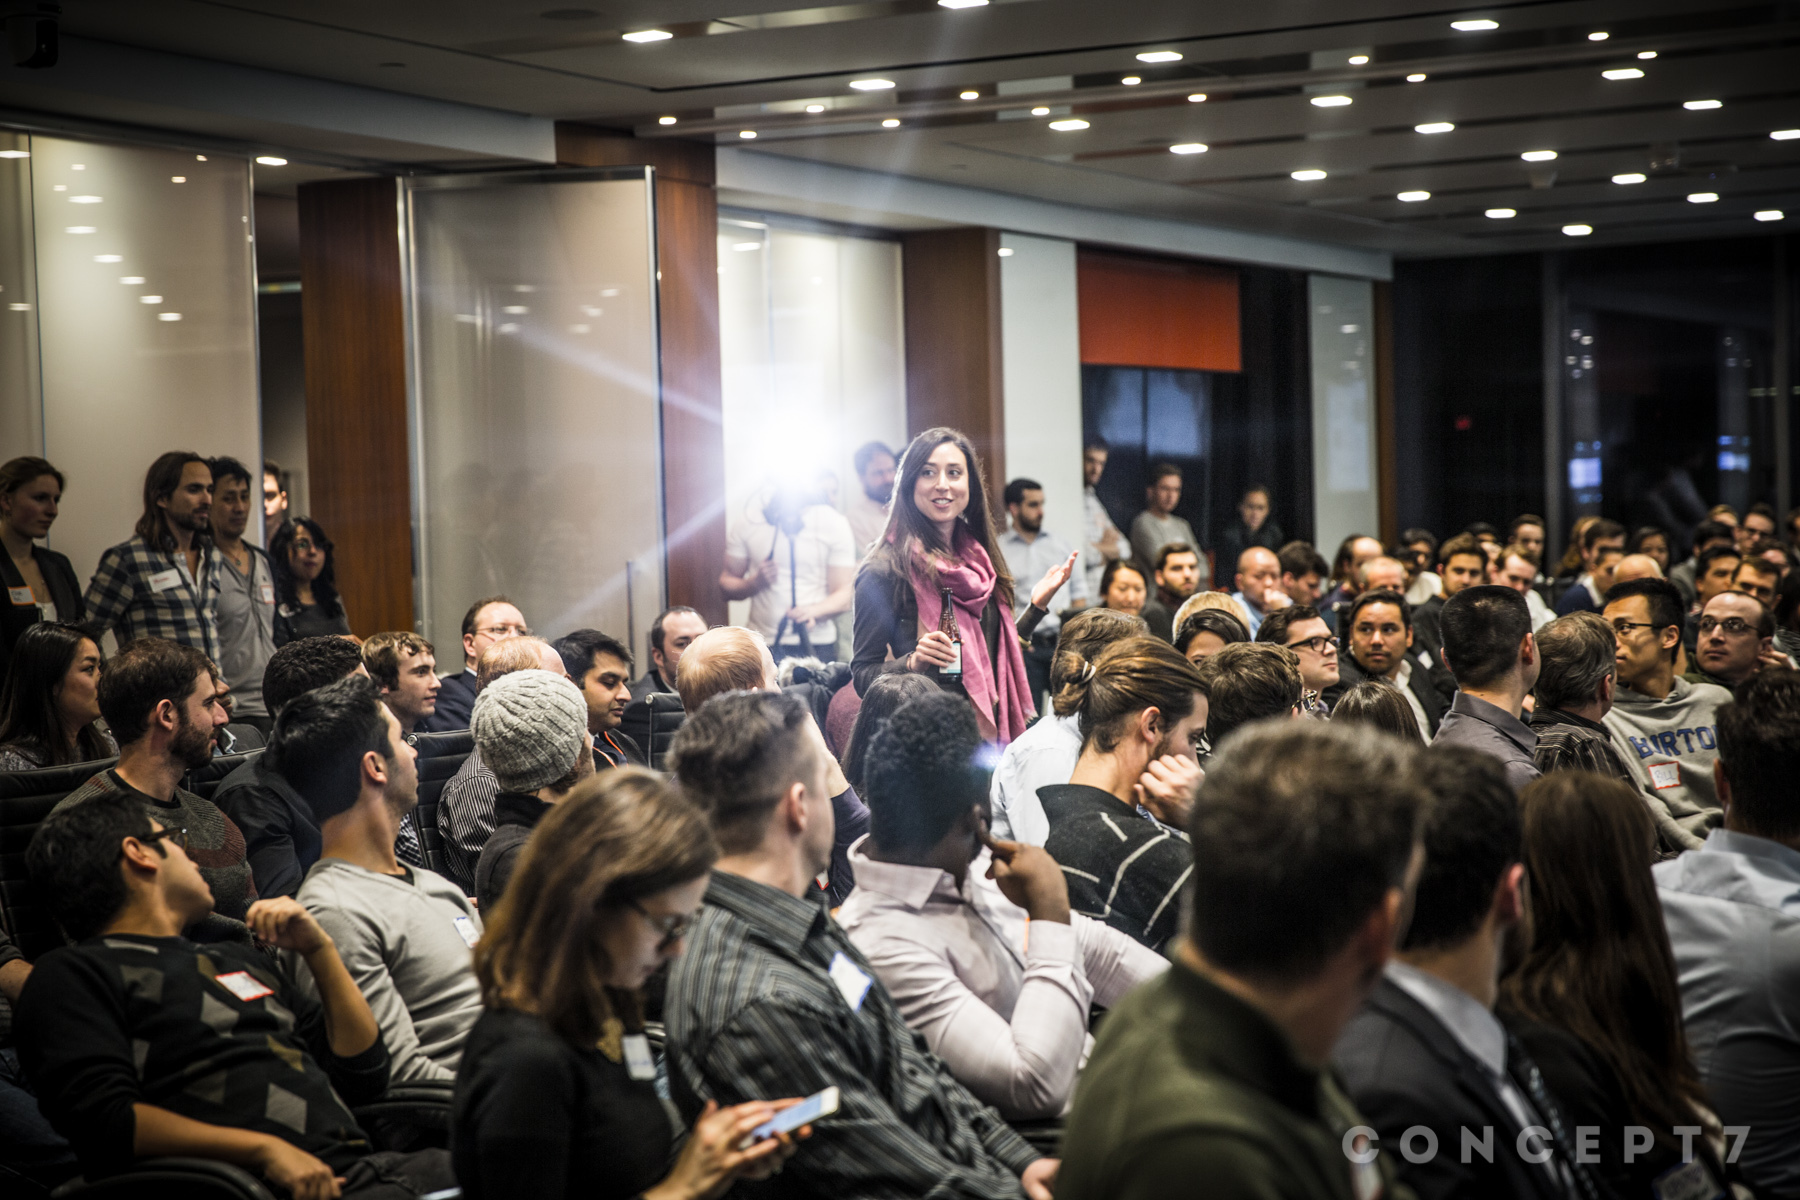 The January Toronto Tech Meetup: Subway Wifi, Brand Advocacy, Landing a Startup Job, Getting Investors to Care, Living Below Your Means